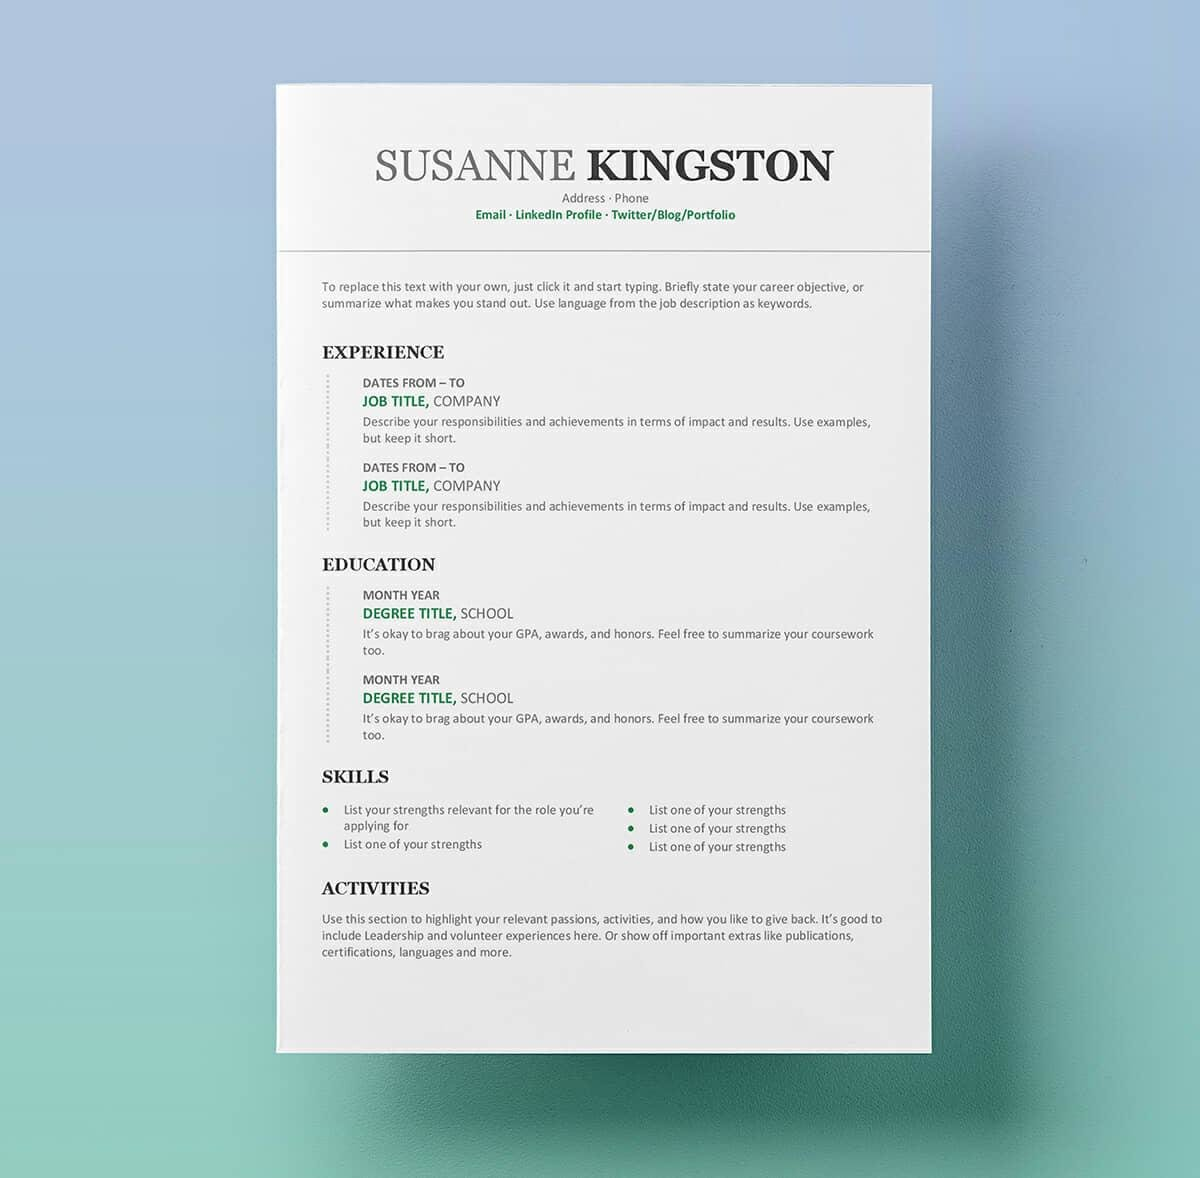 Free Resume Templates For Word | Resume Templates For Word Free 15 Examples For Download